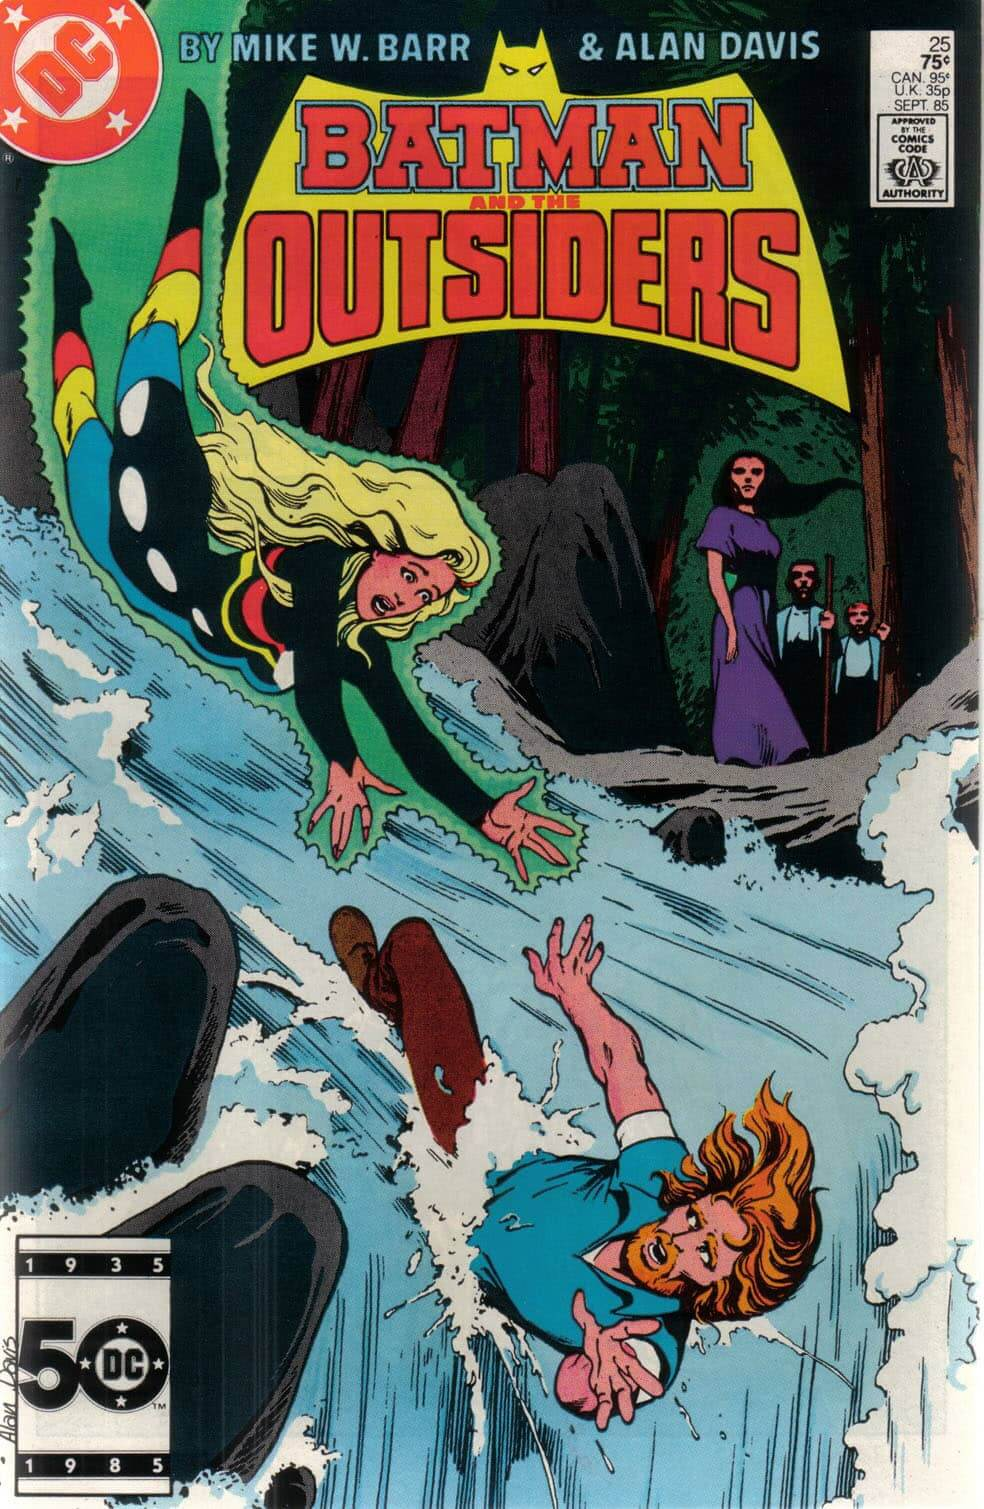 Batman portada outsiders 83